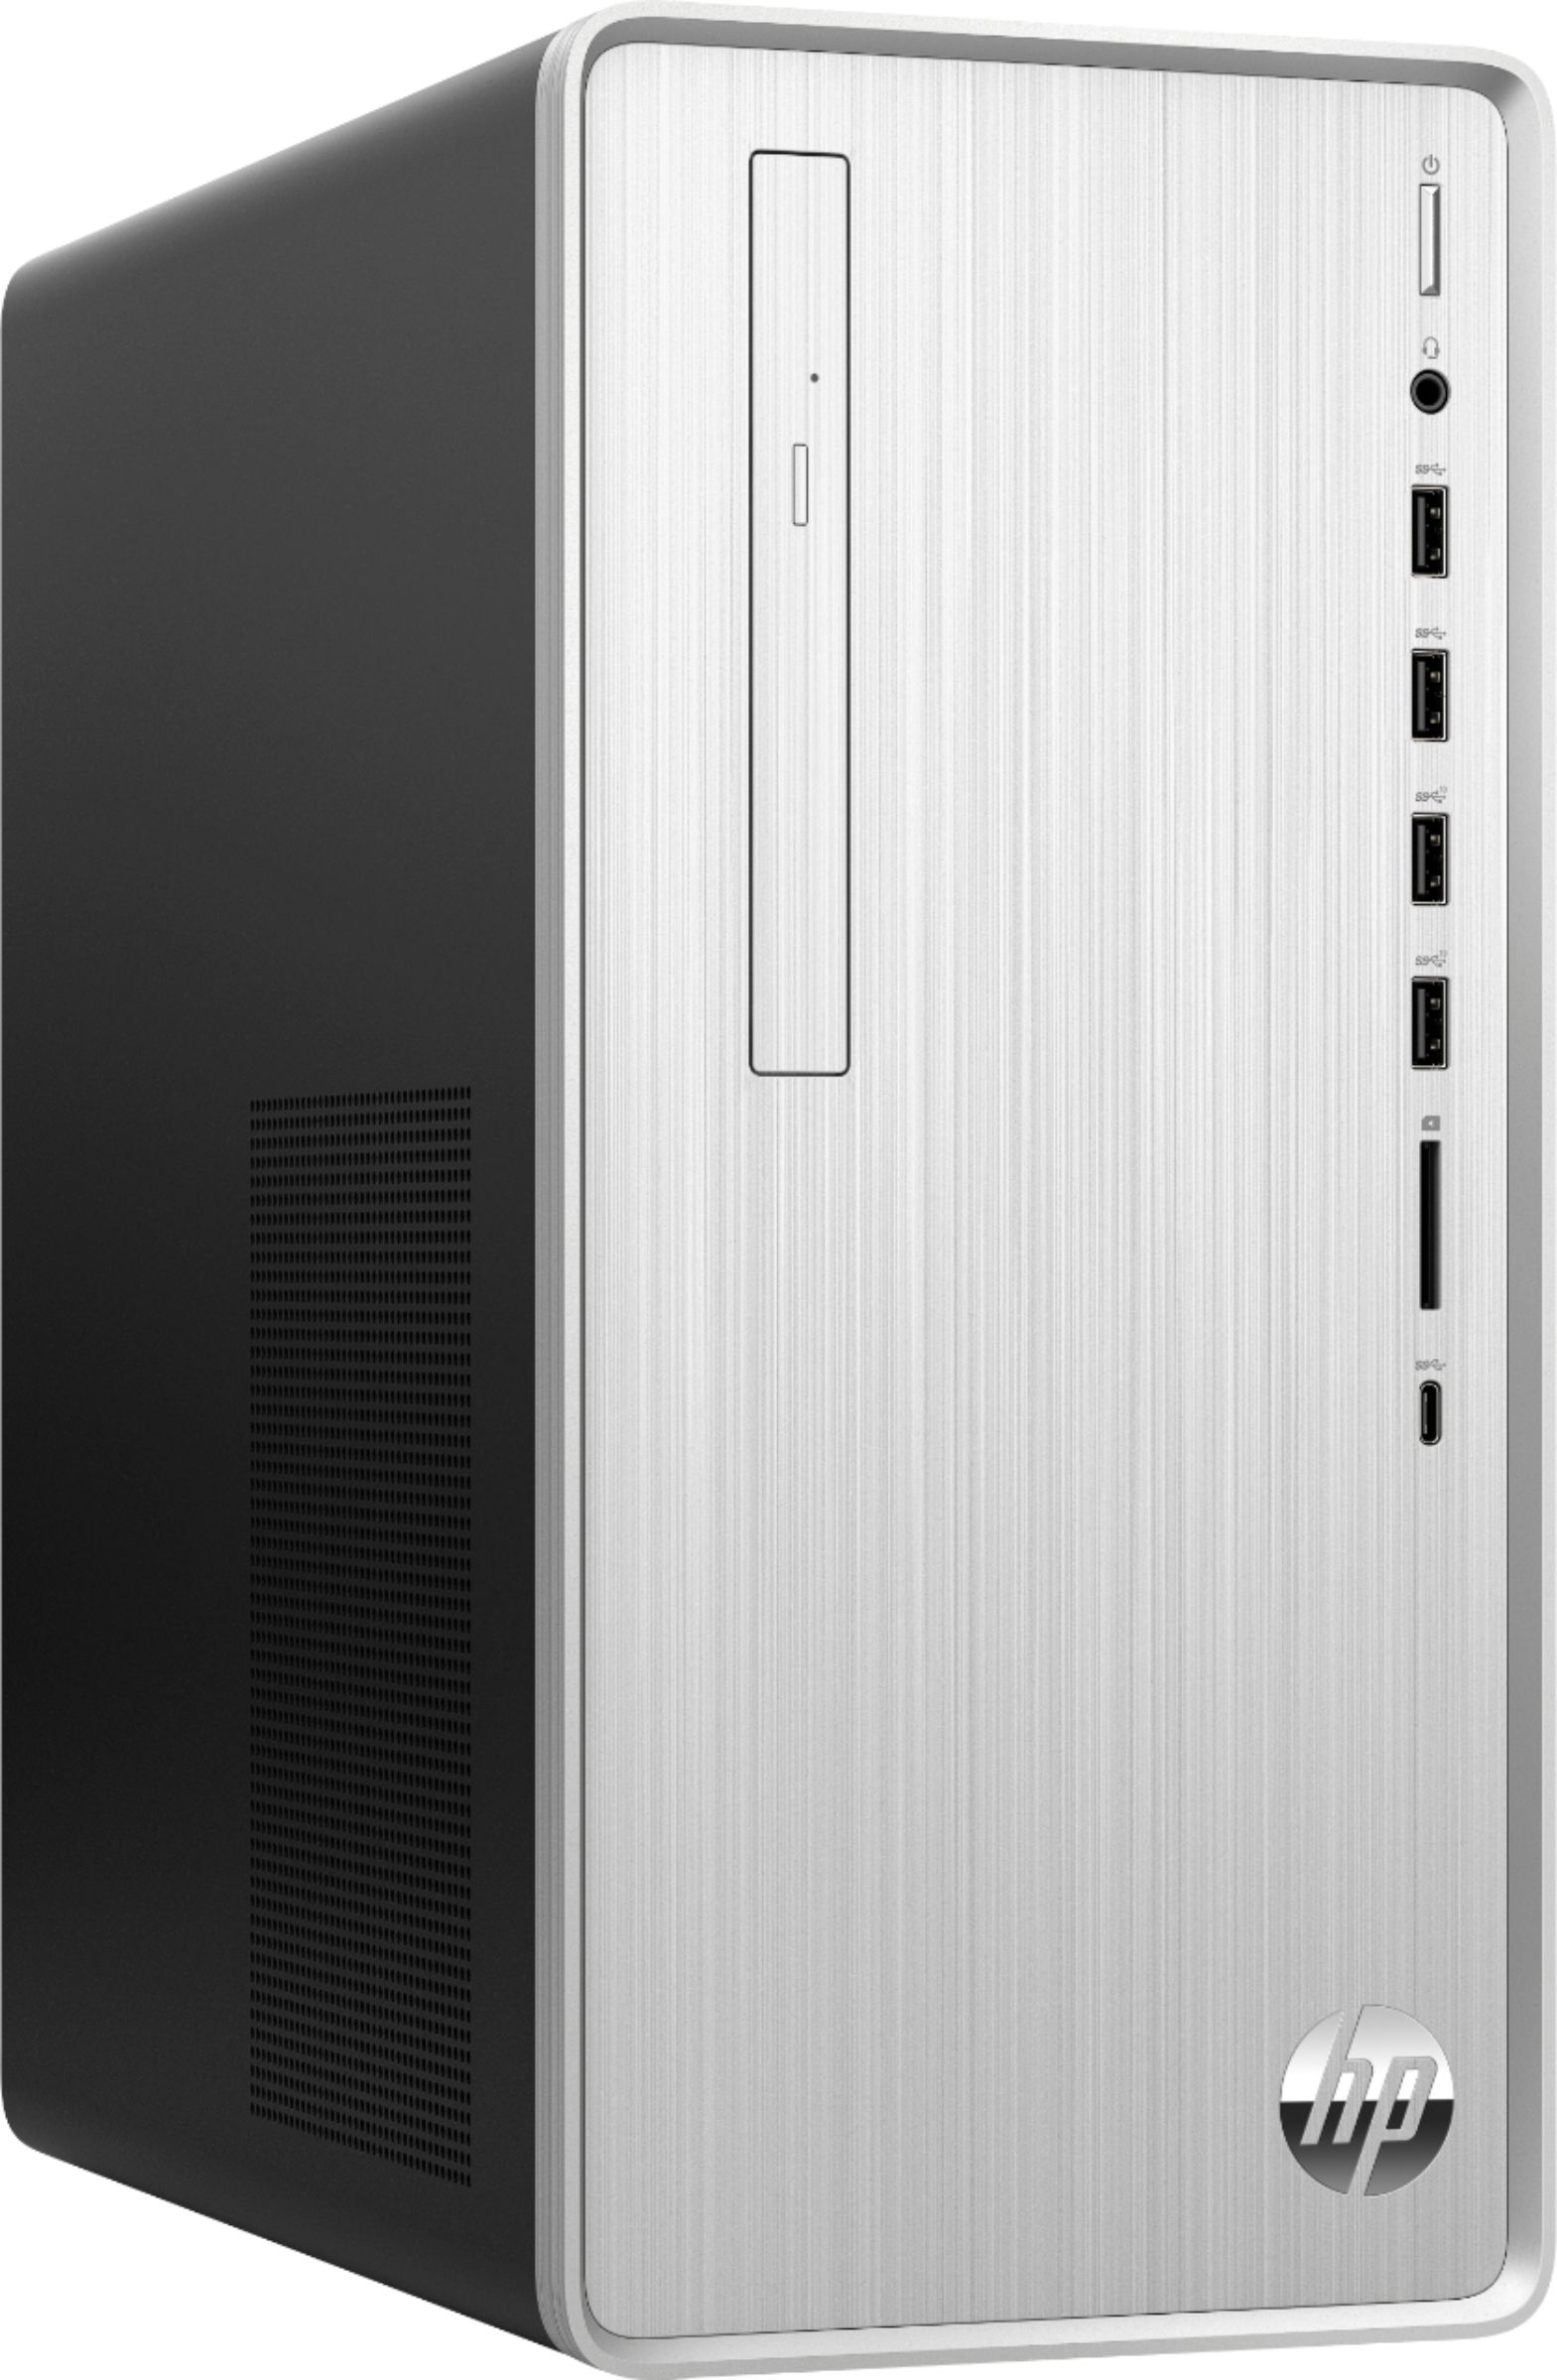 Angle Zoom. HP - Pavilion Desktop - Intel Core i3 - 8GB Memory - 256GB Solid State Drive - Natural Silver.